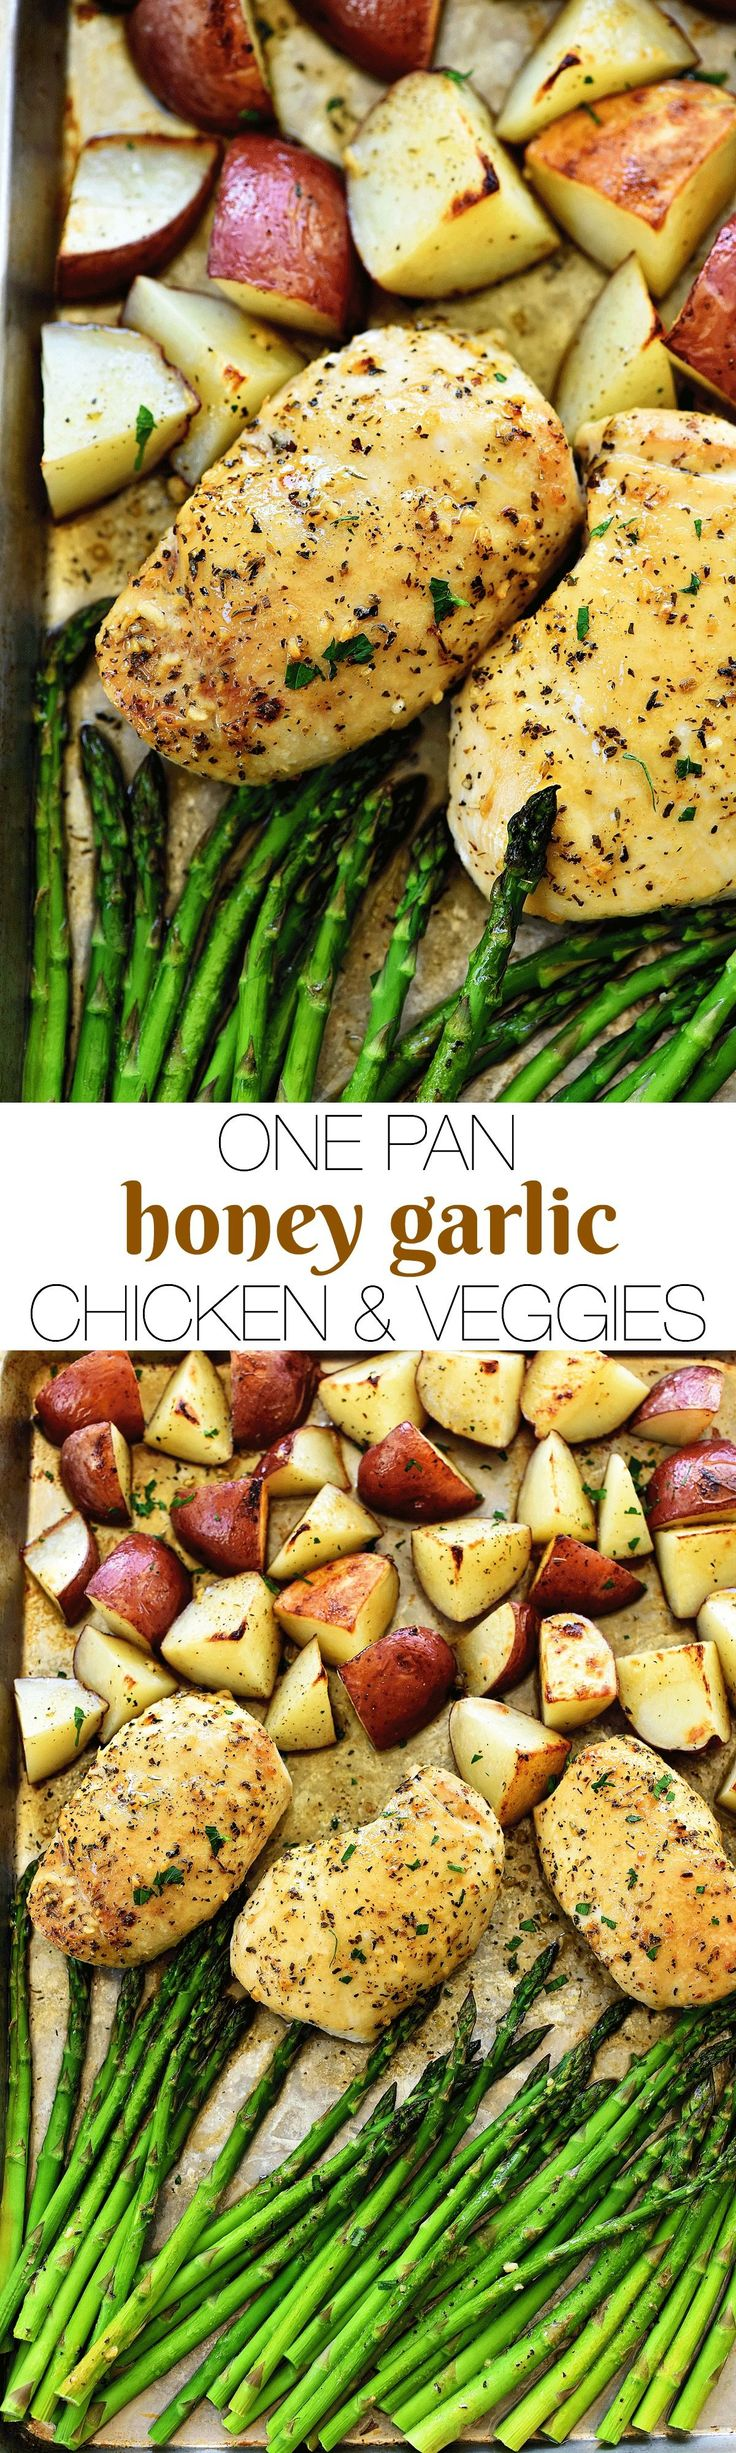 Cheers to the freakin' weekend! I love Fridays and I love this recipe I am sharing today- ONE PAN HONEY GARLIC CHICKEN & VEGGIES! This is my new favorite dinner at the moment. Seriously, it is amazing. There are a few reasons why- A) the entire meal is cooked in one pan (hallelujah )... Read More »